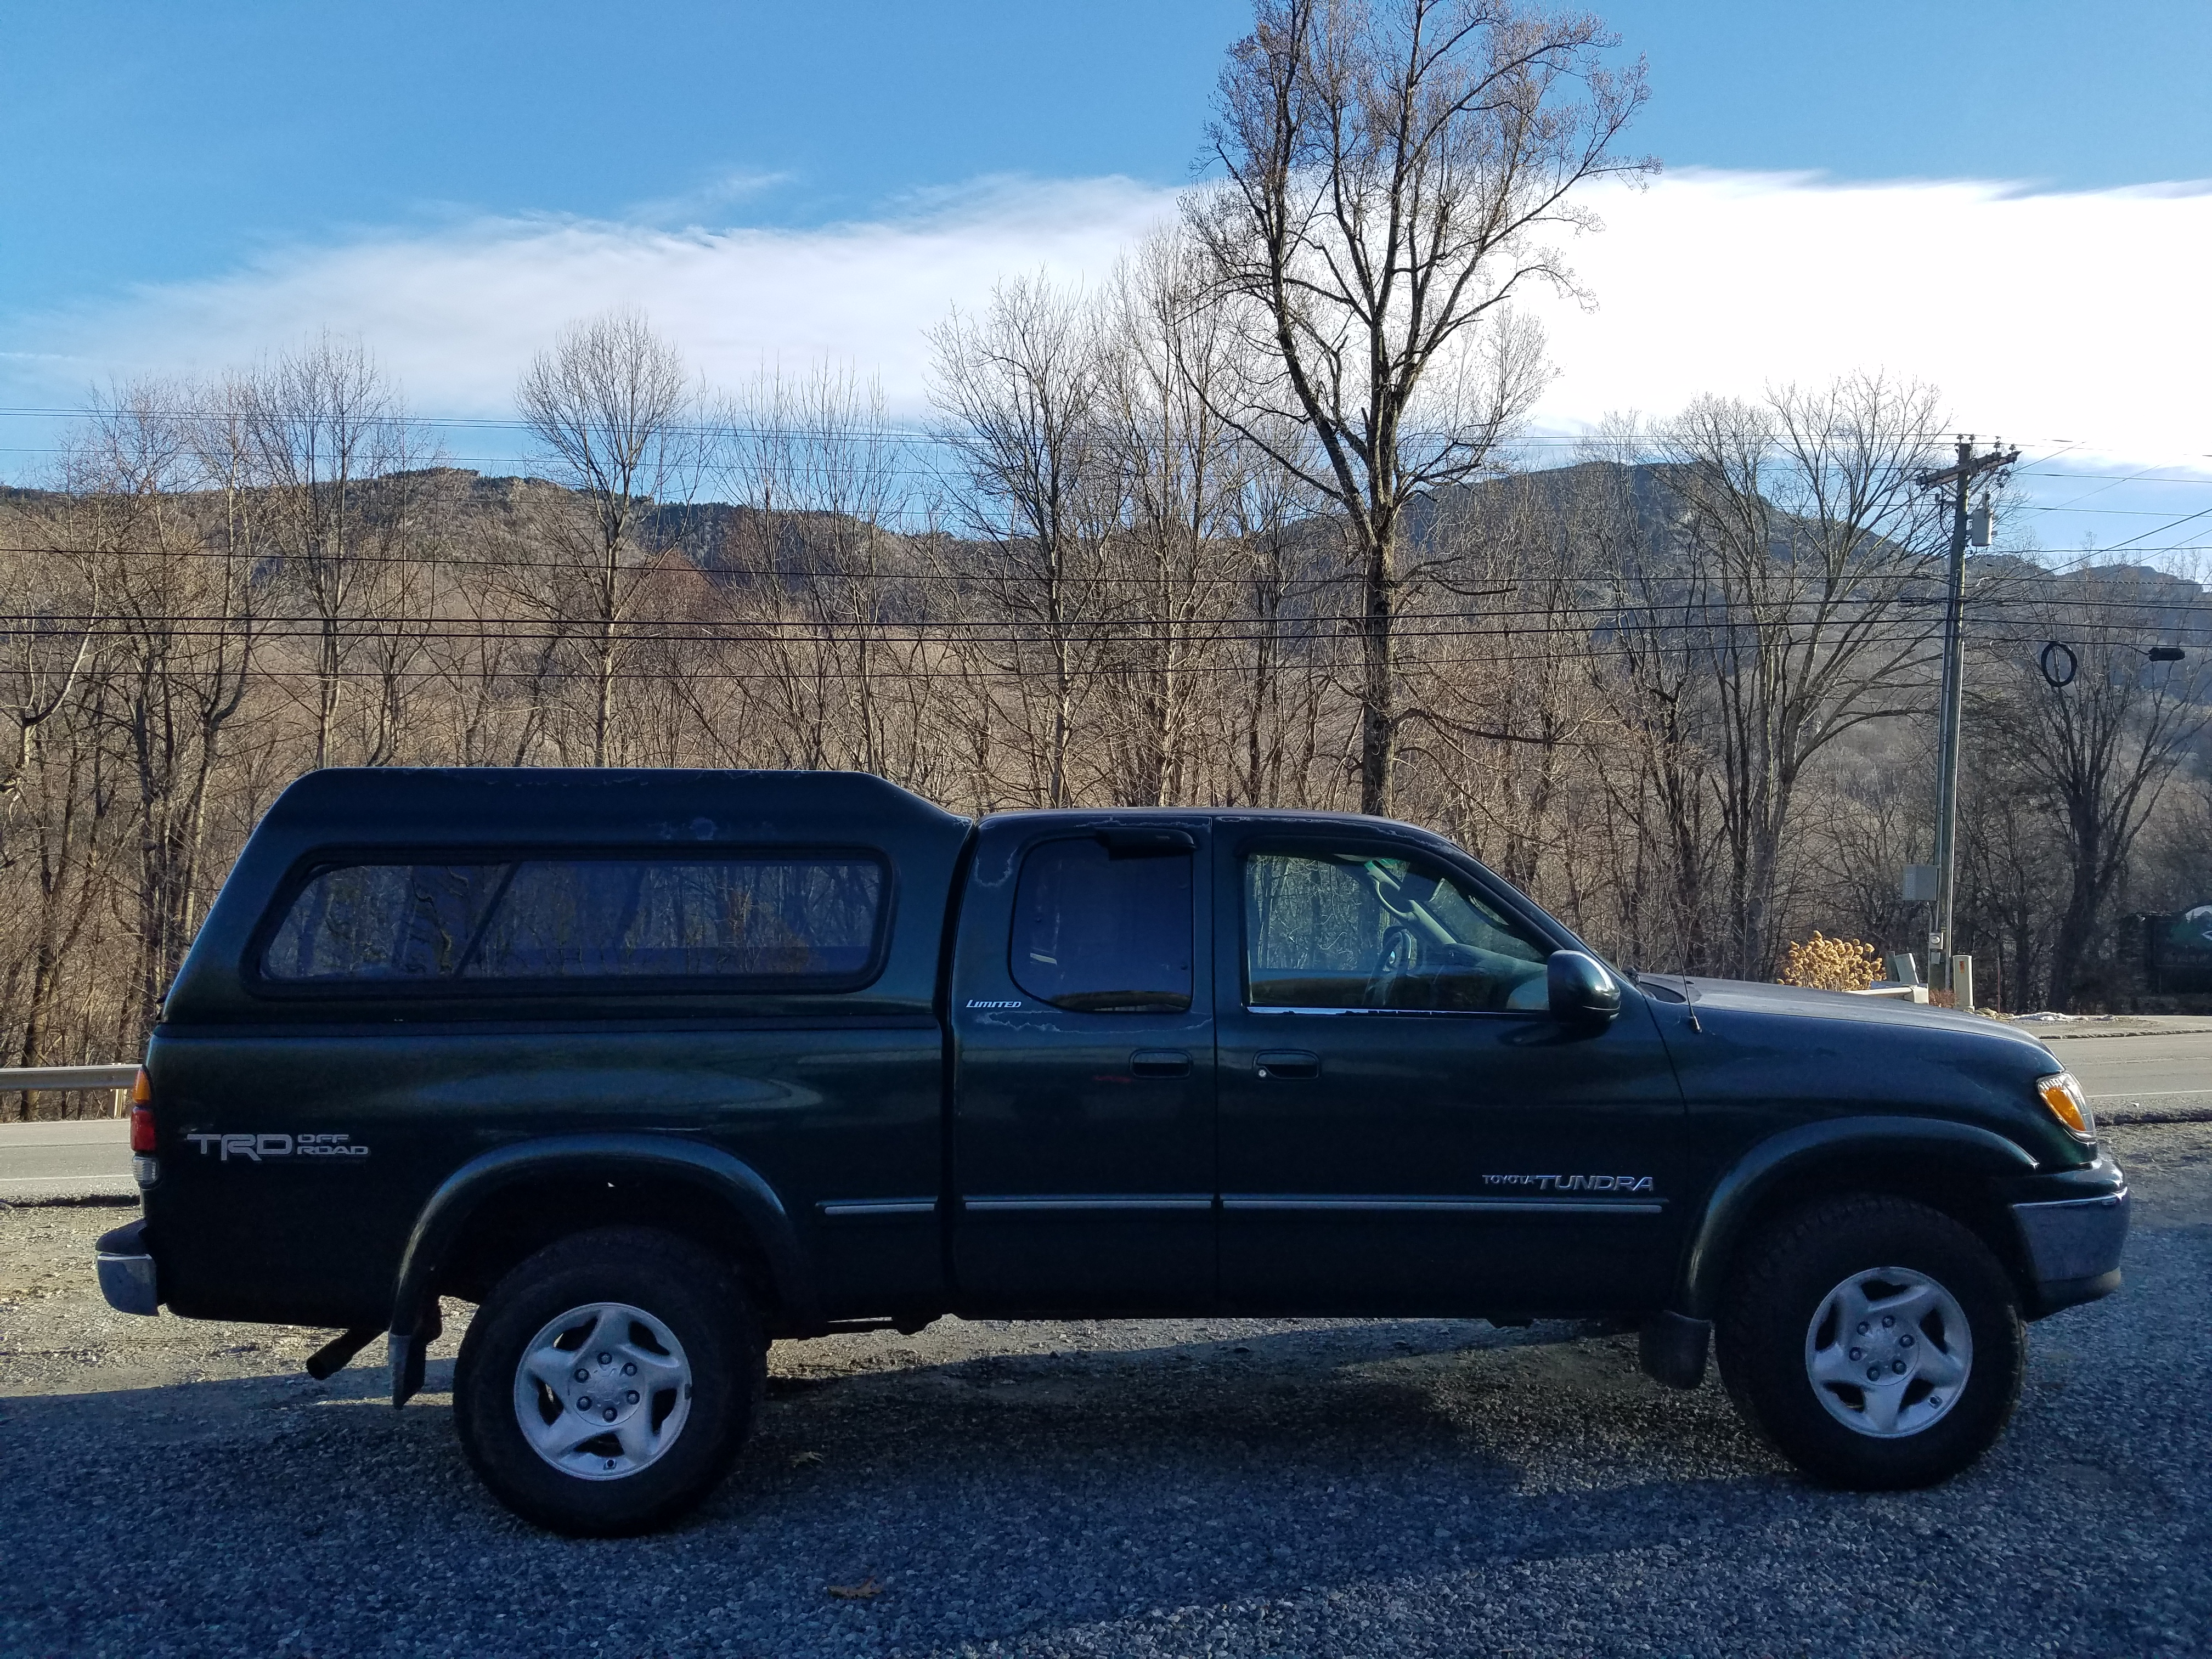 Joe\'s Used Cars - Cars, trucks, SUVs for sale in the High Country ...